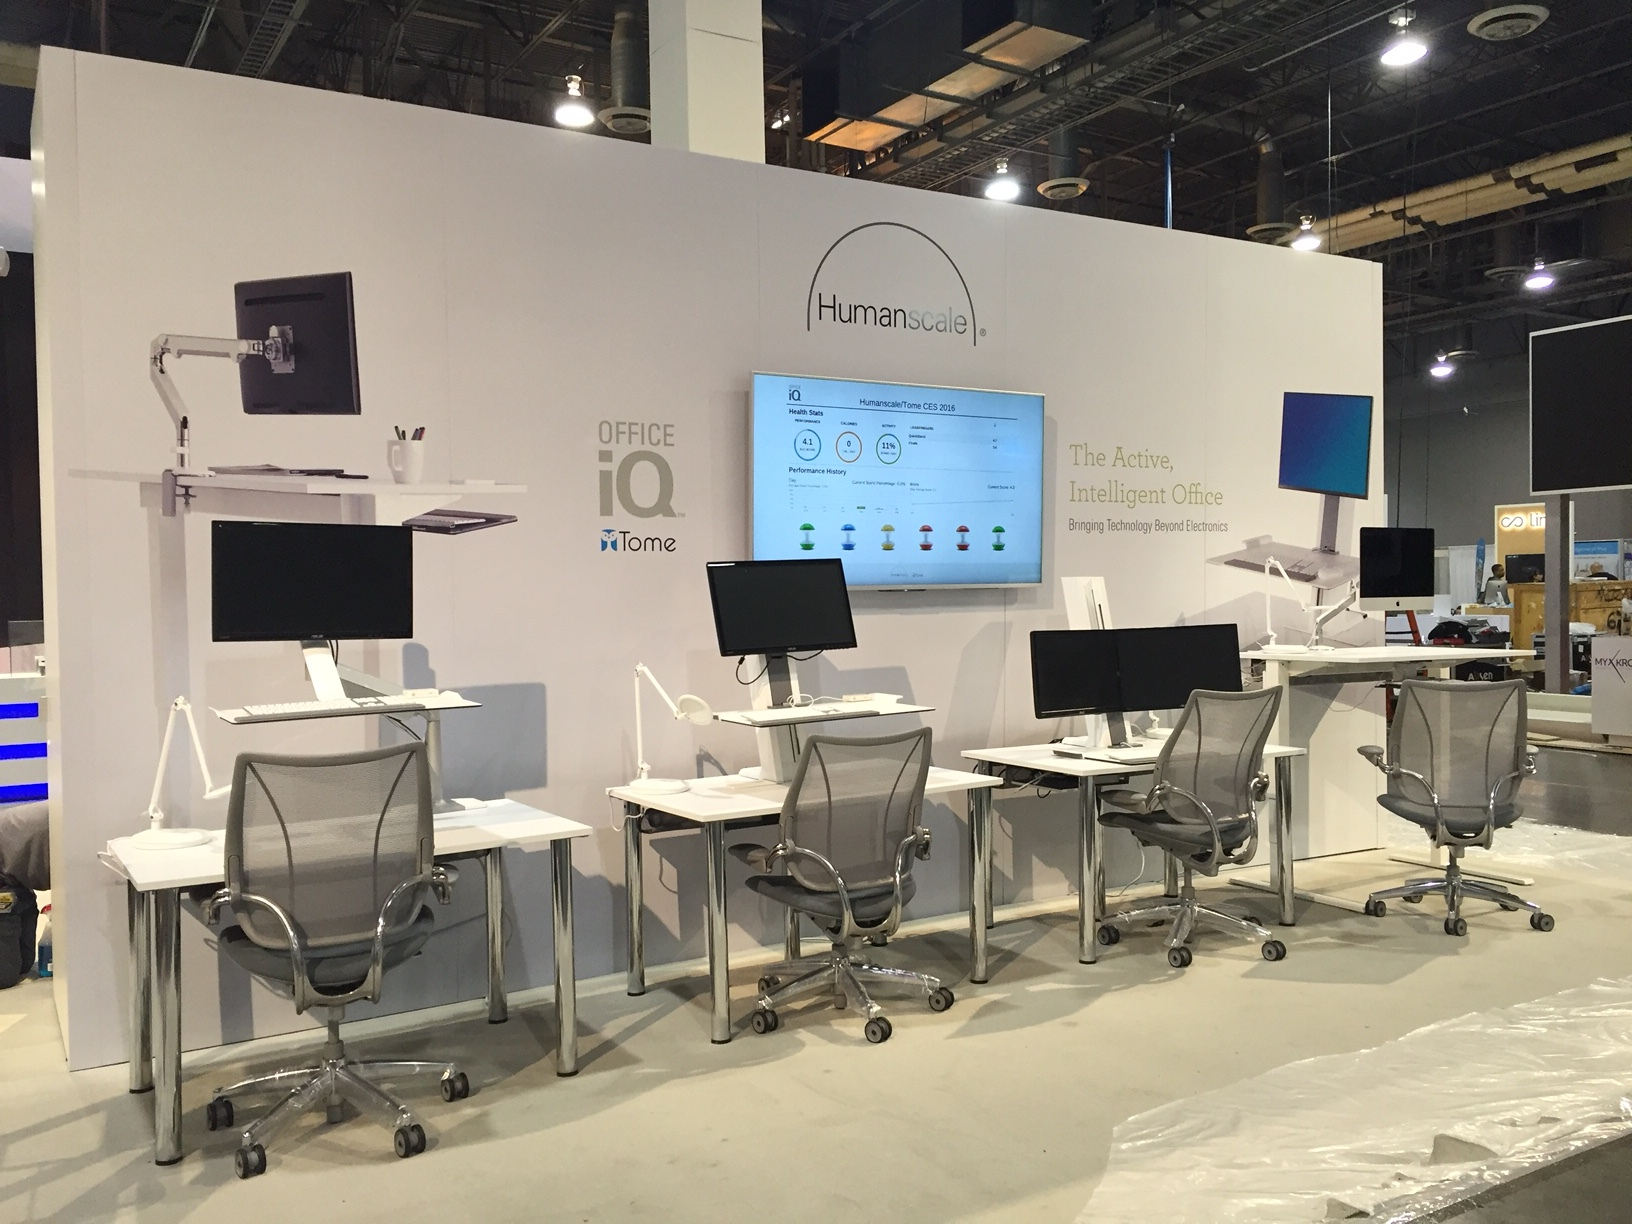 Humanscale display at CES 2016